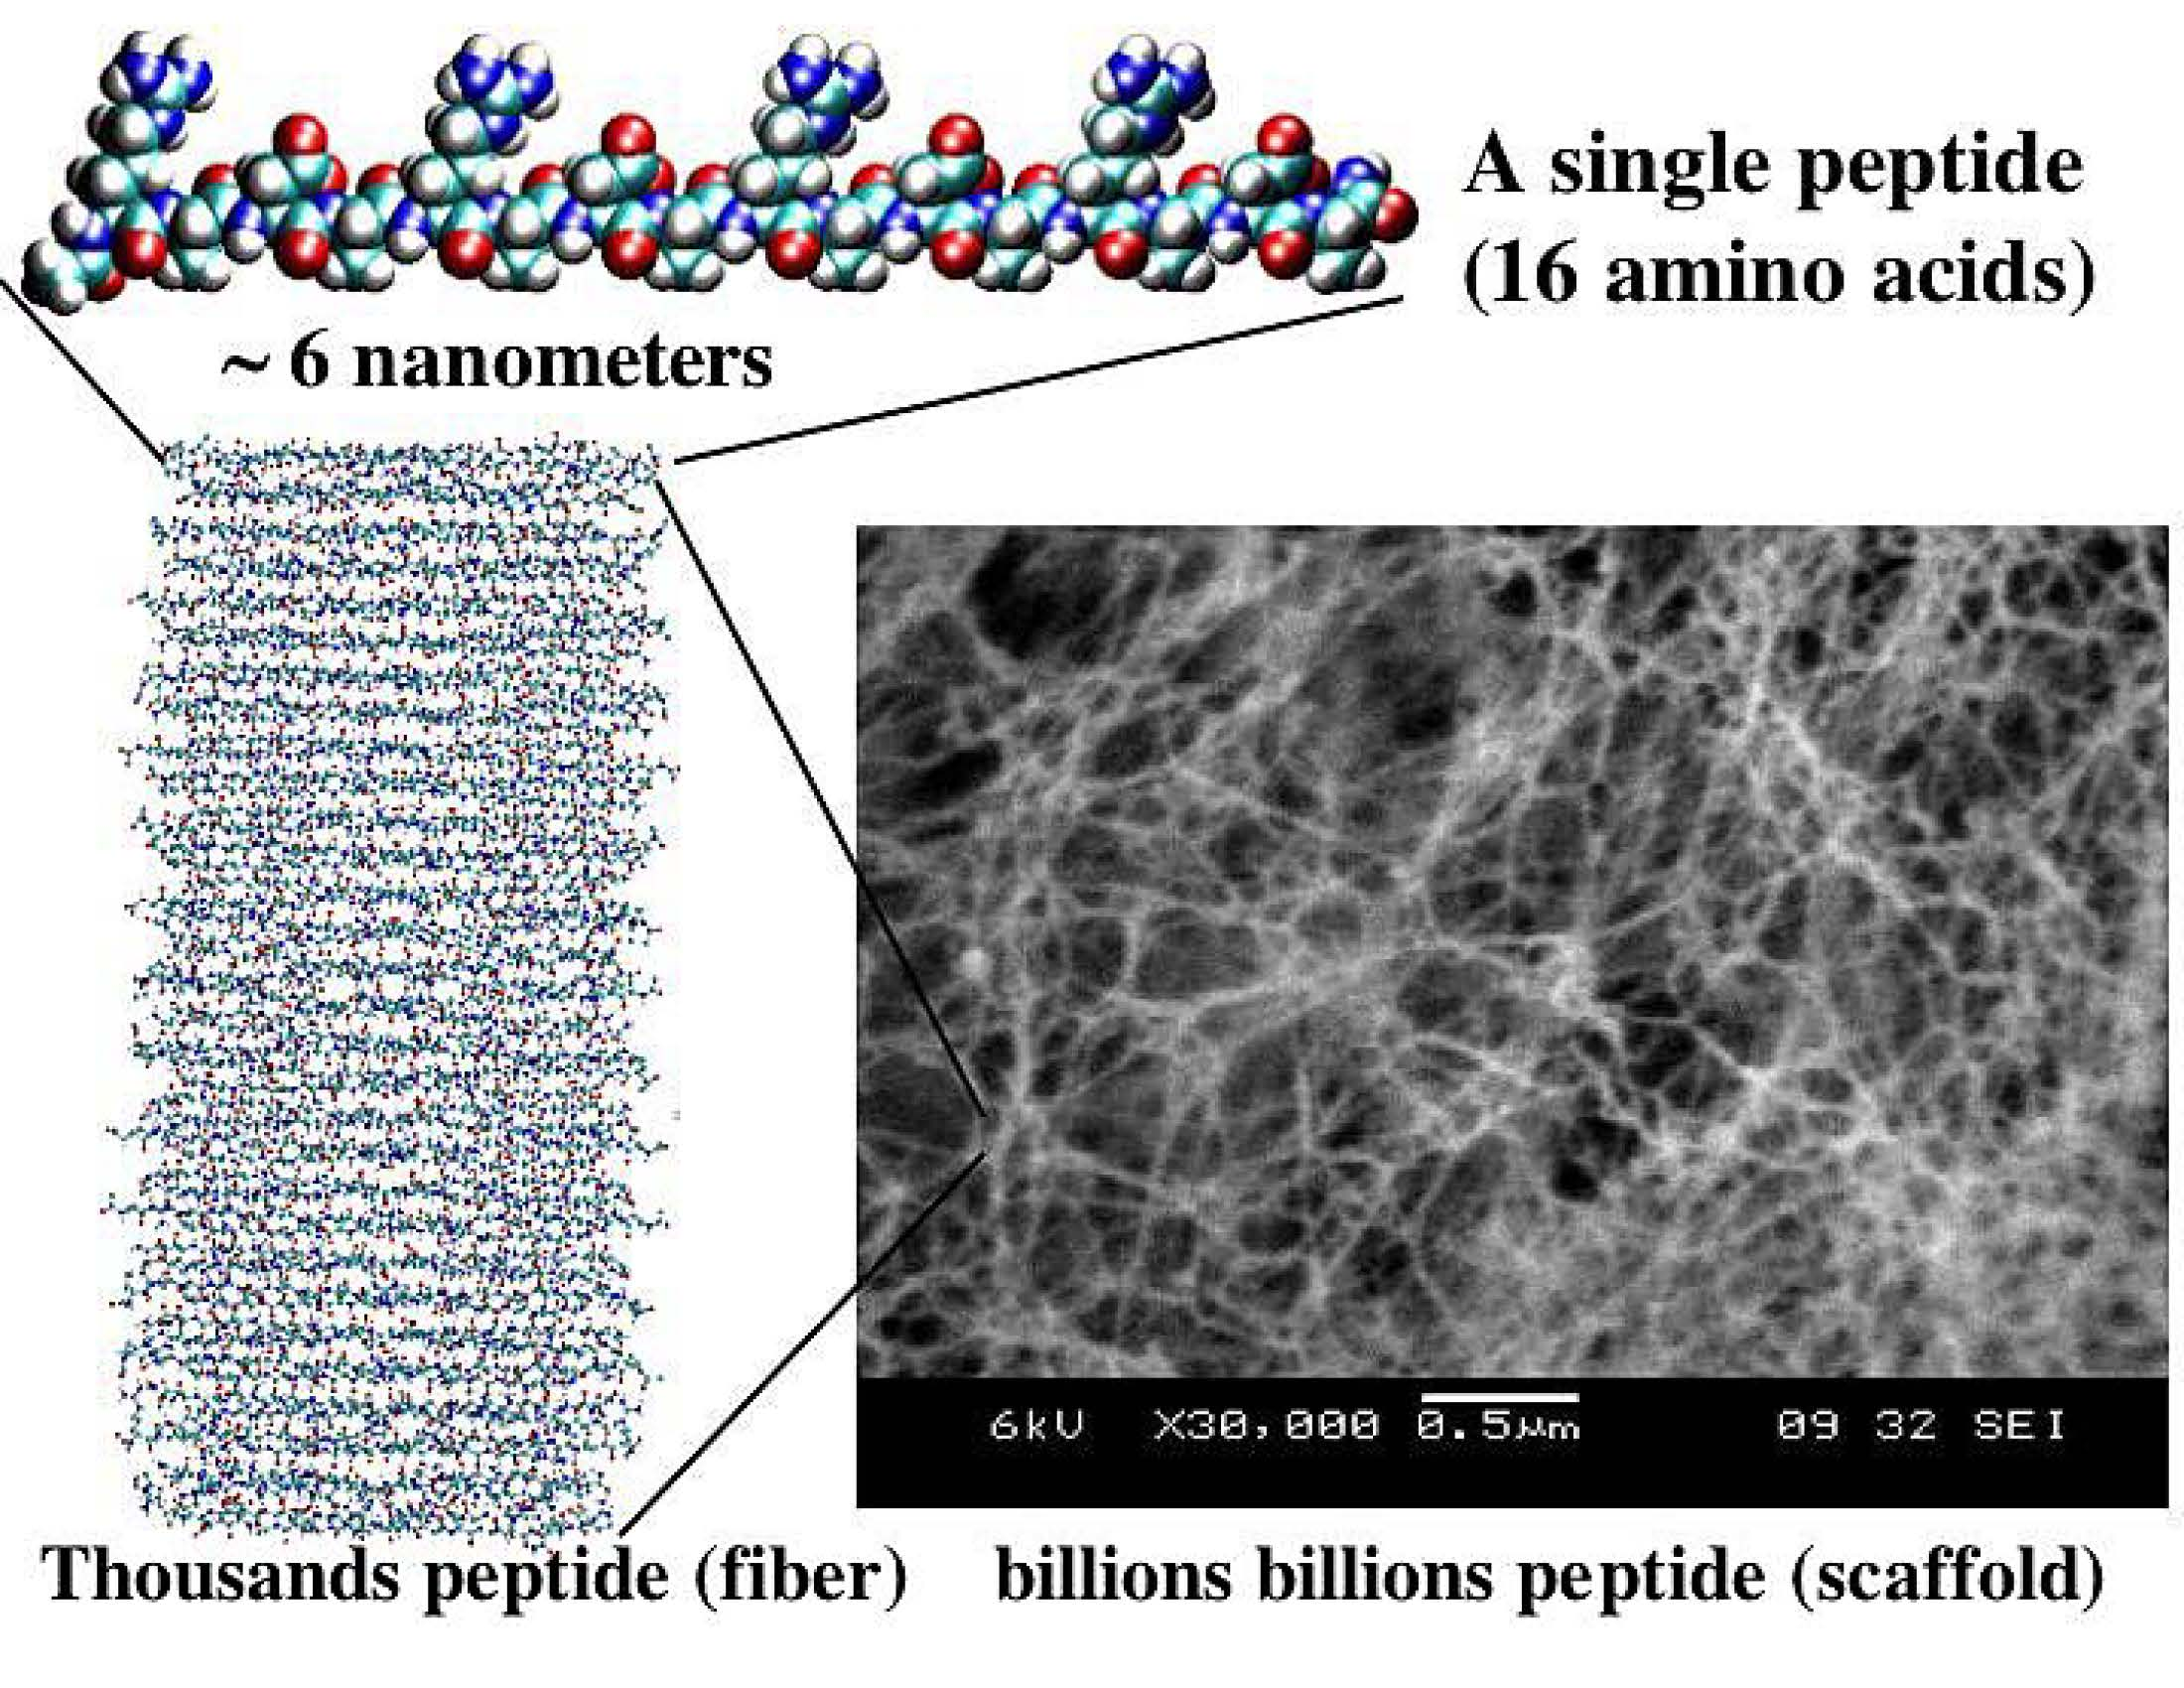 From single peptides to peptide nanofibers to a peptide scaffold.